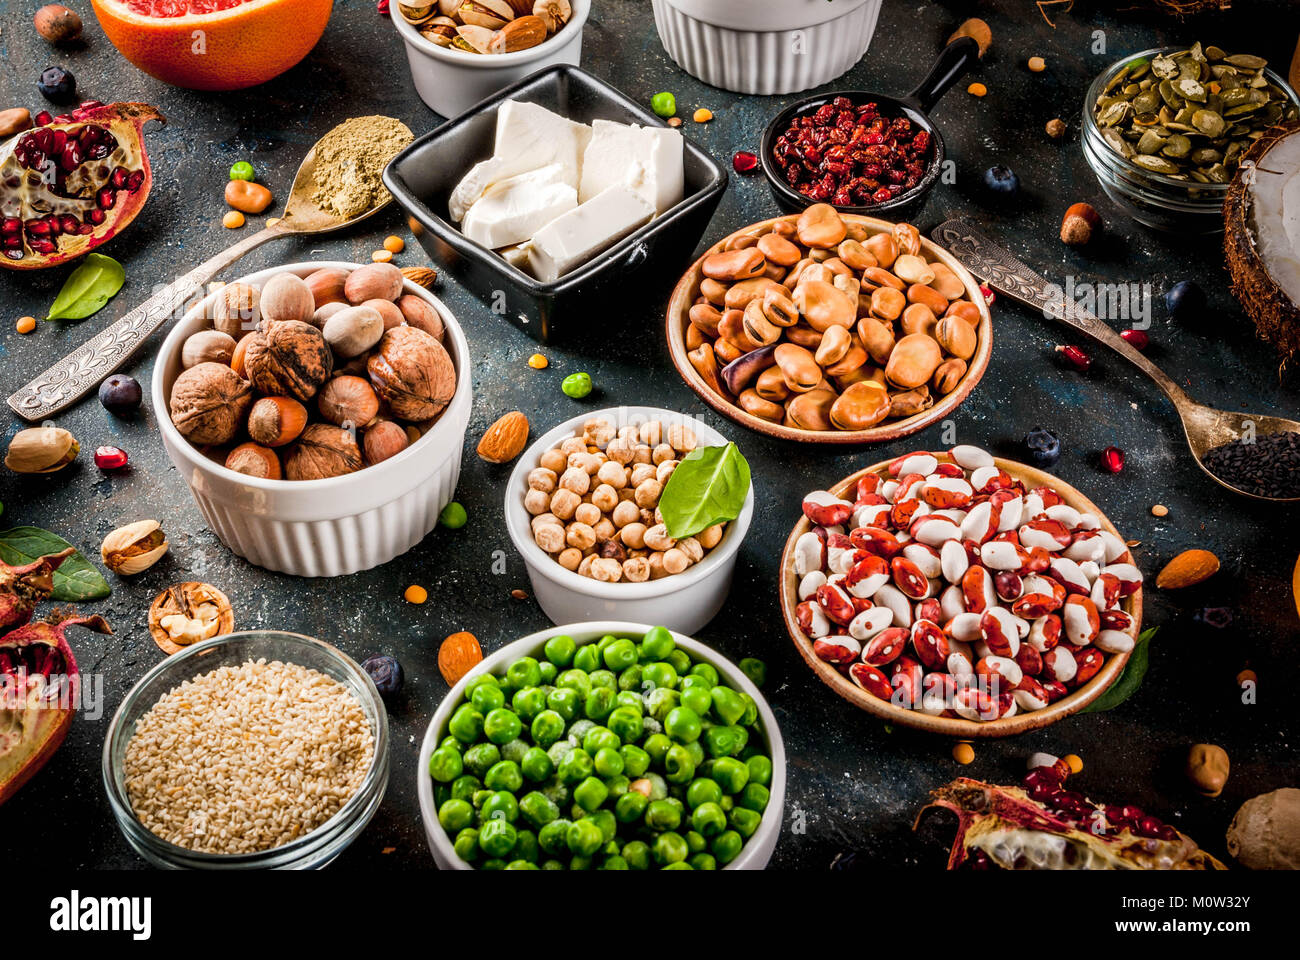 Set of organic healthy diet food, superfoods - beans, legumes, nuts, seeds, greens, fruit and vegetables. Dark blue Stock Photo